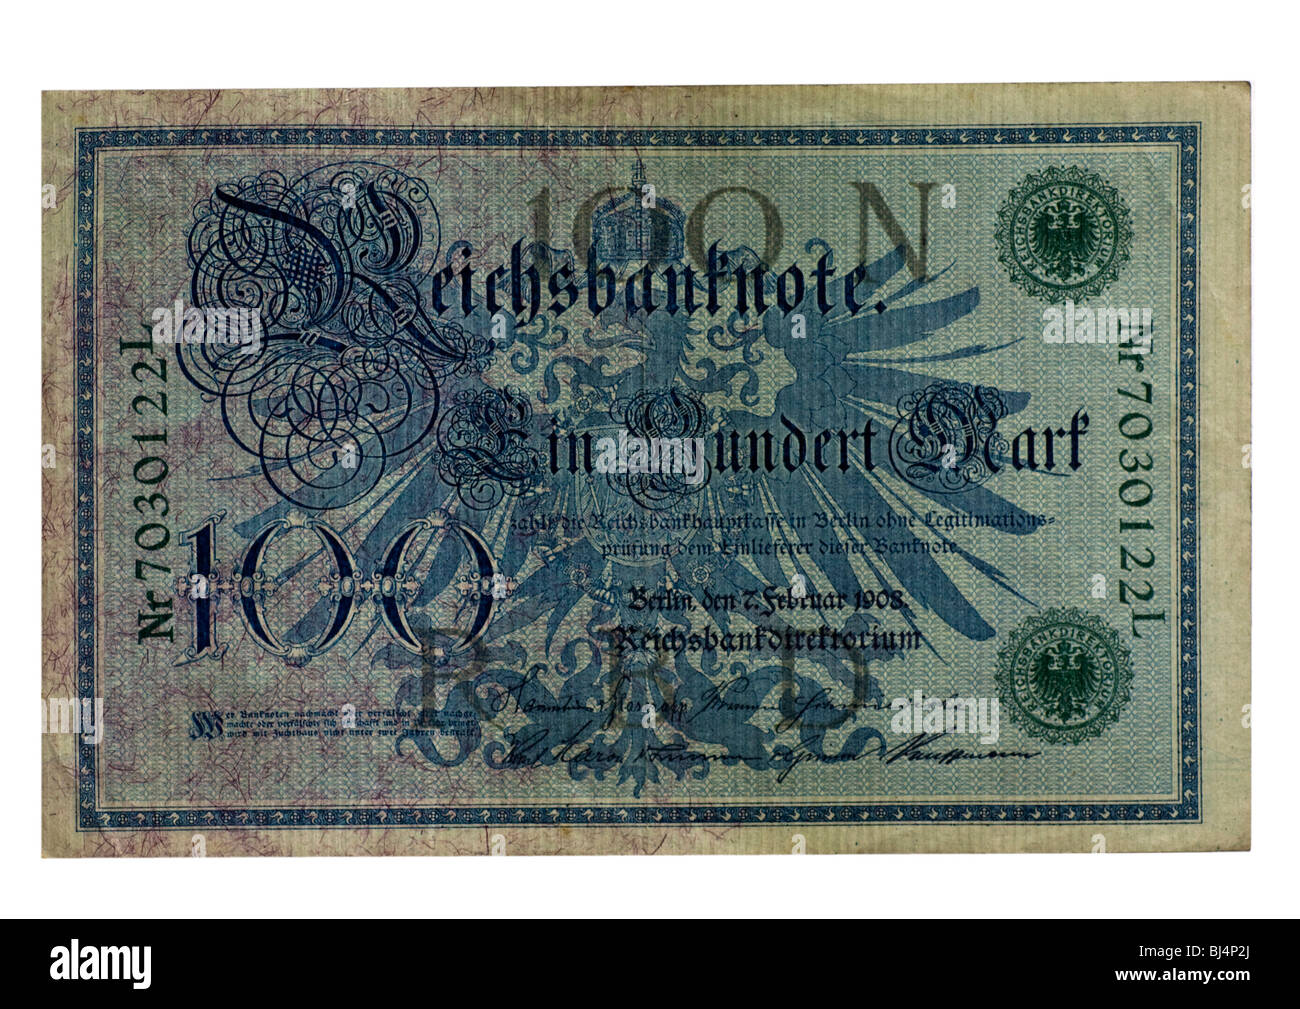 Front of a Reichsbanknote bill of the Central Bank over one hundred marks, Berlin, board of the Central Bank of Stock Photo